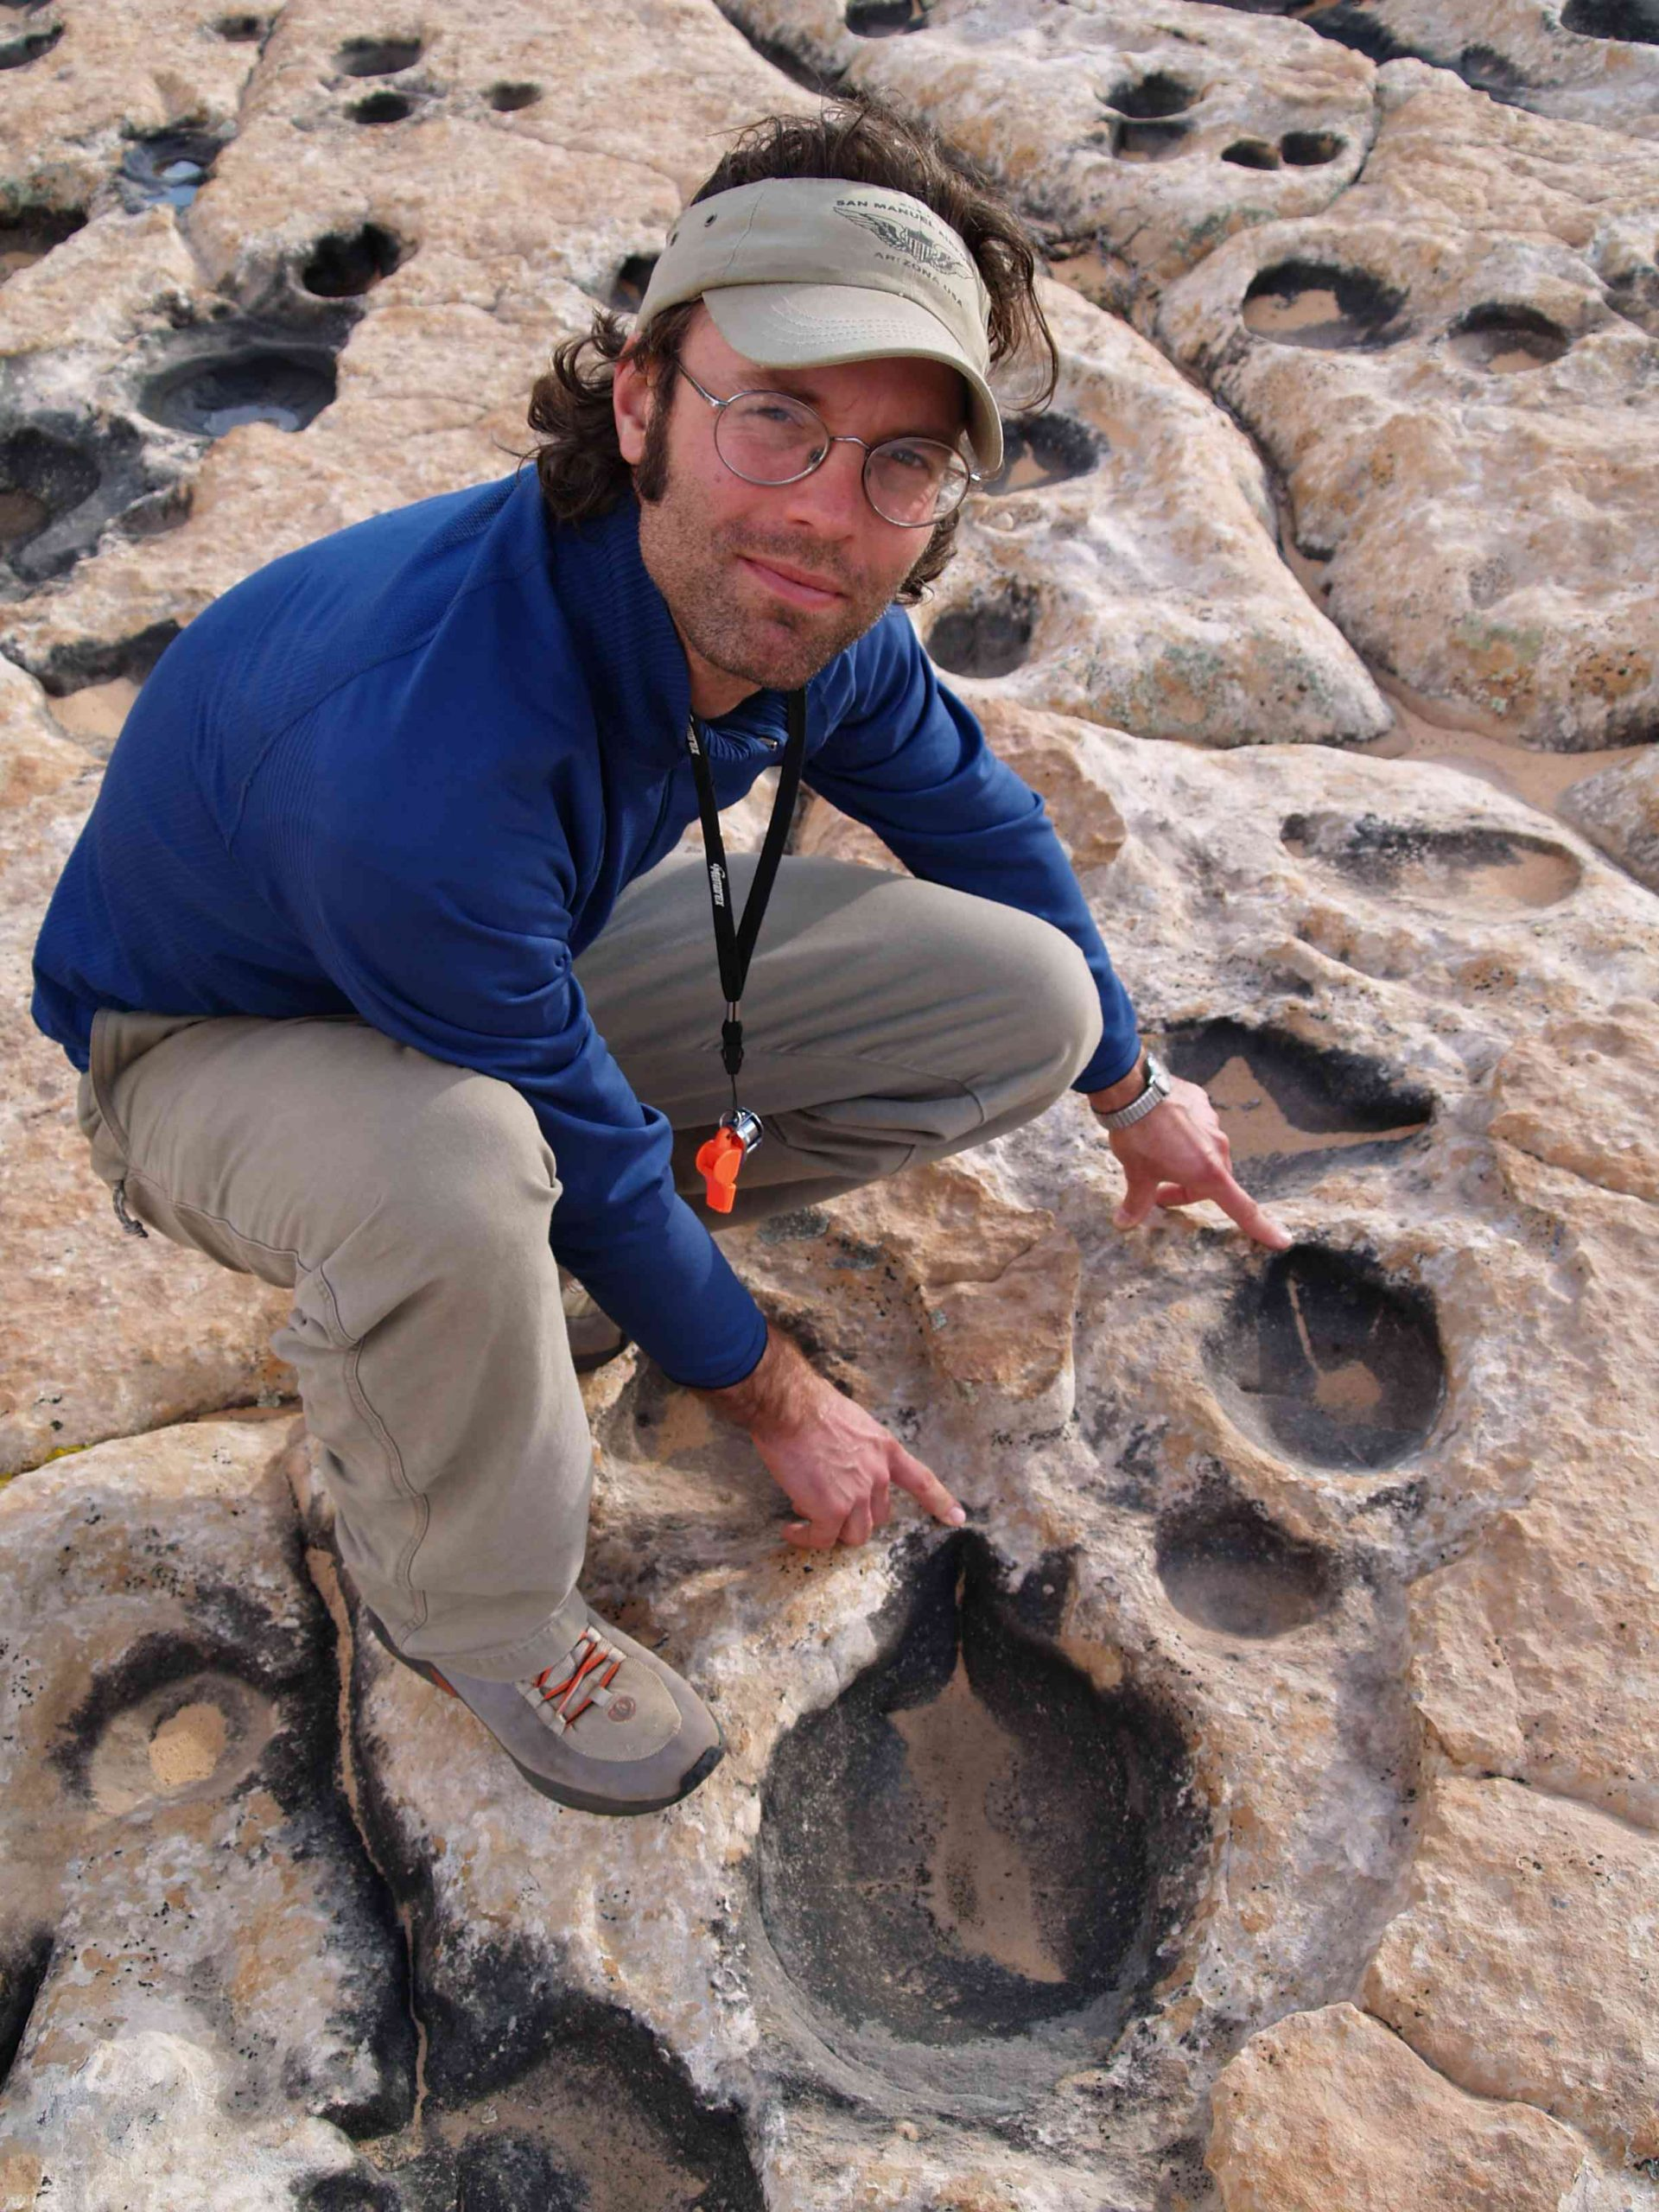 """Geologist Winston Seiler with some of the dinosaur tracks he identified for his thesis as a University of Utah master's degree student. The impressions once were thought to be potholes eroded by water. But Seiler and Marjorie Chan, chair of geology and geophysics at the University of Utah, published a scientific paper in the October 2008 issue of the journal Palaios identifying the abundant impressions as comprising a large dinosaur """"trample surface"""" in northern Arizona. There are so many tracks they wryly refer to the site as """"a dinosaur dance floor."""""""